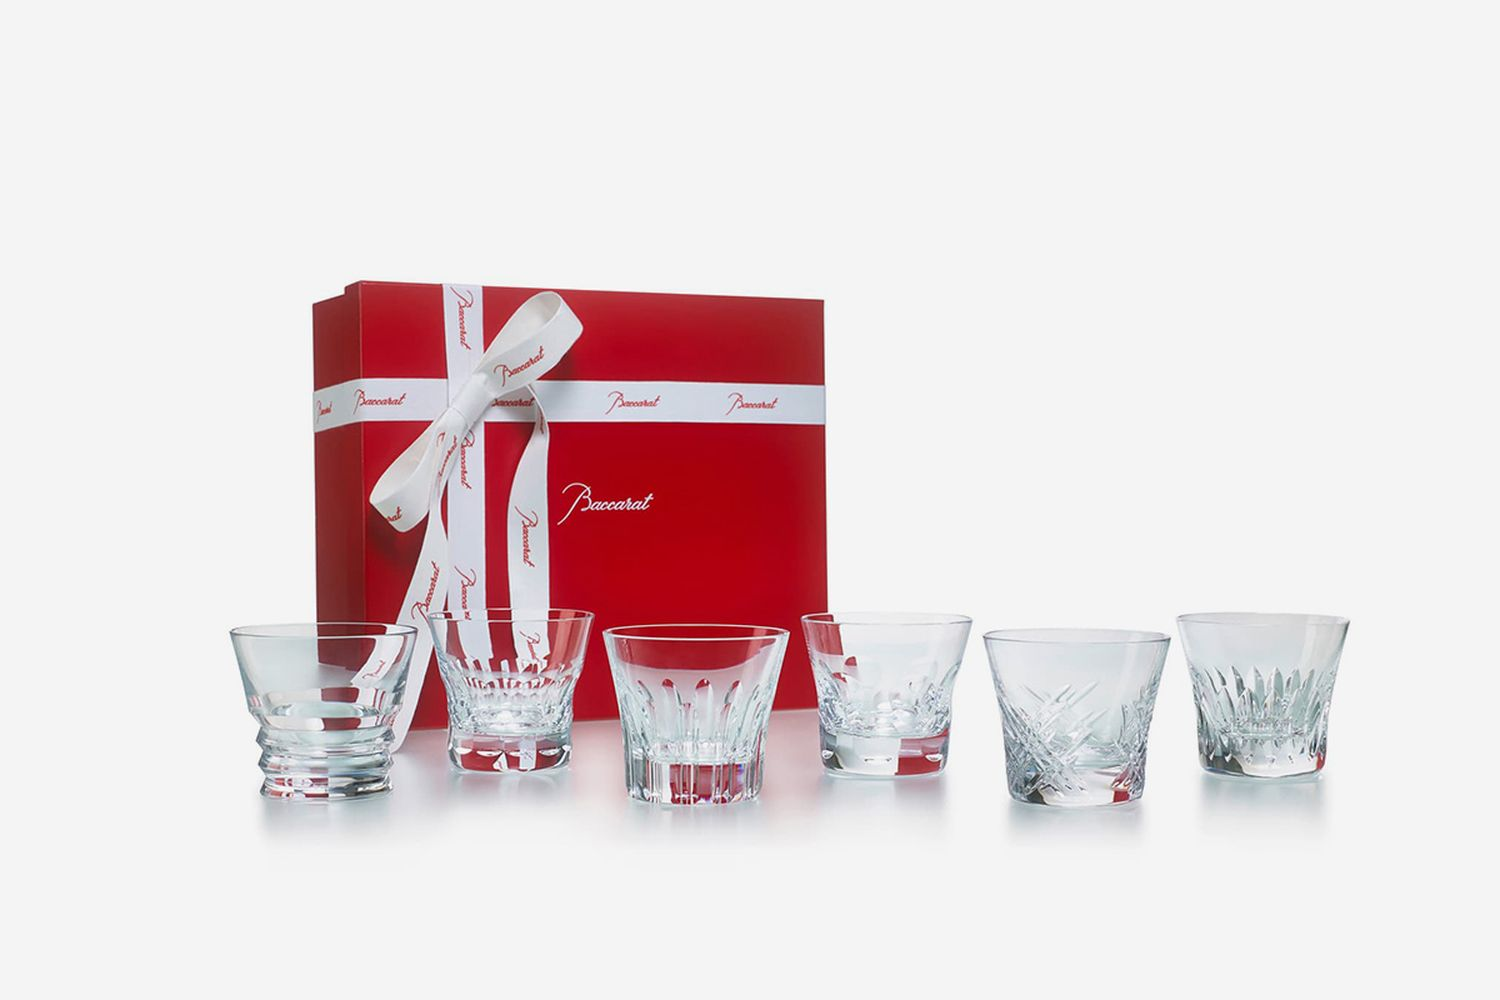 Everyday Set of 6 Lead Crystal Tumblers